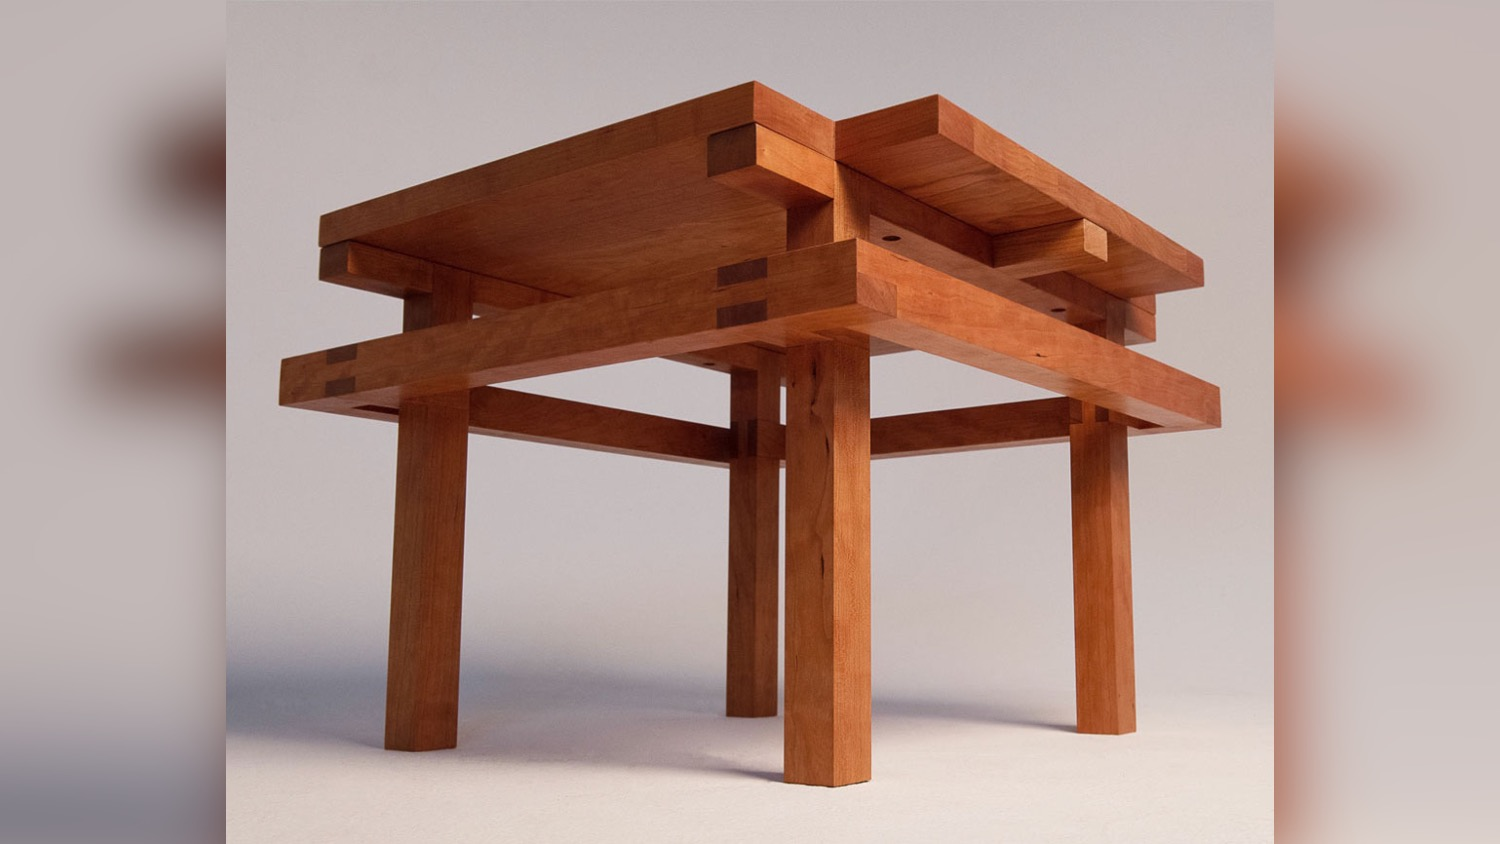 A photo of a table from the floor perspective.